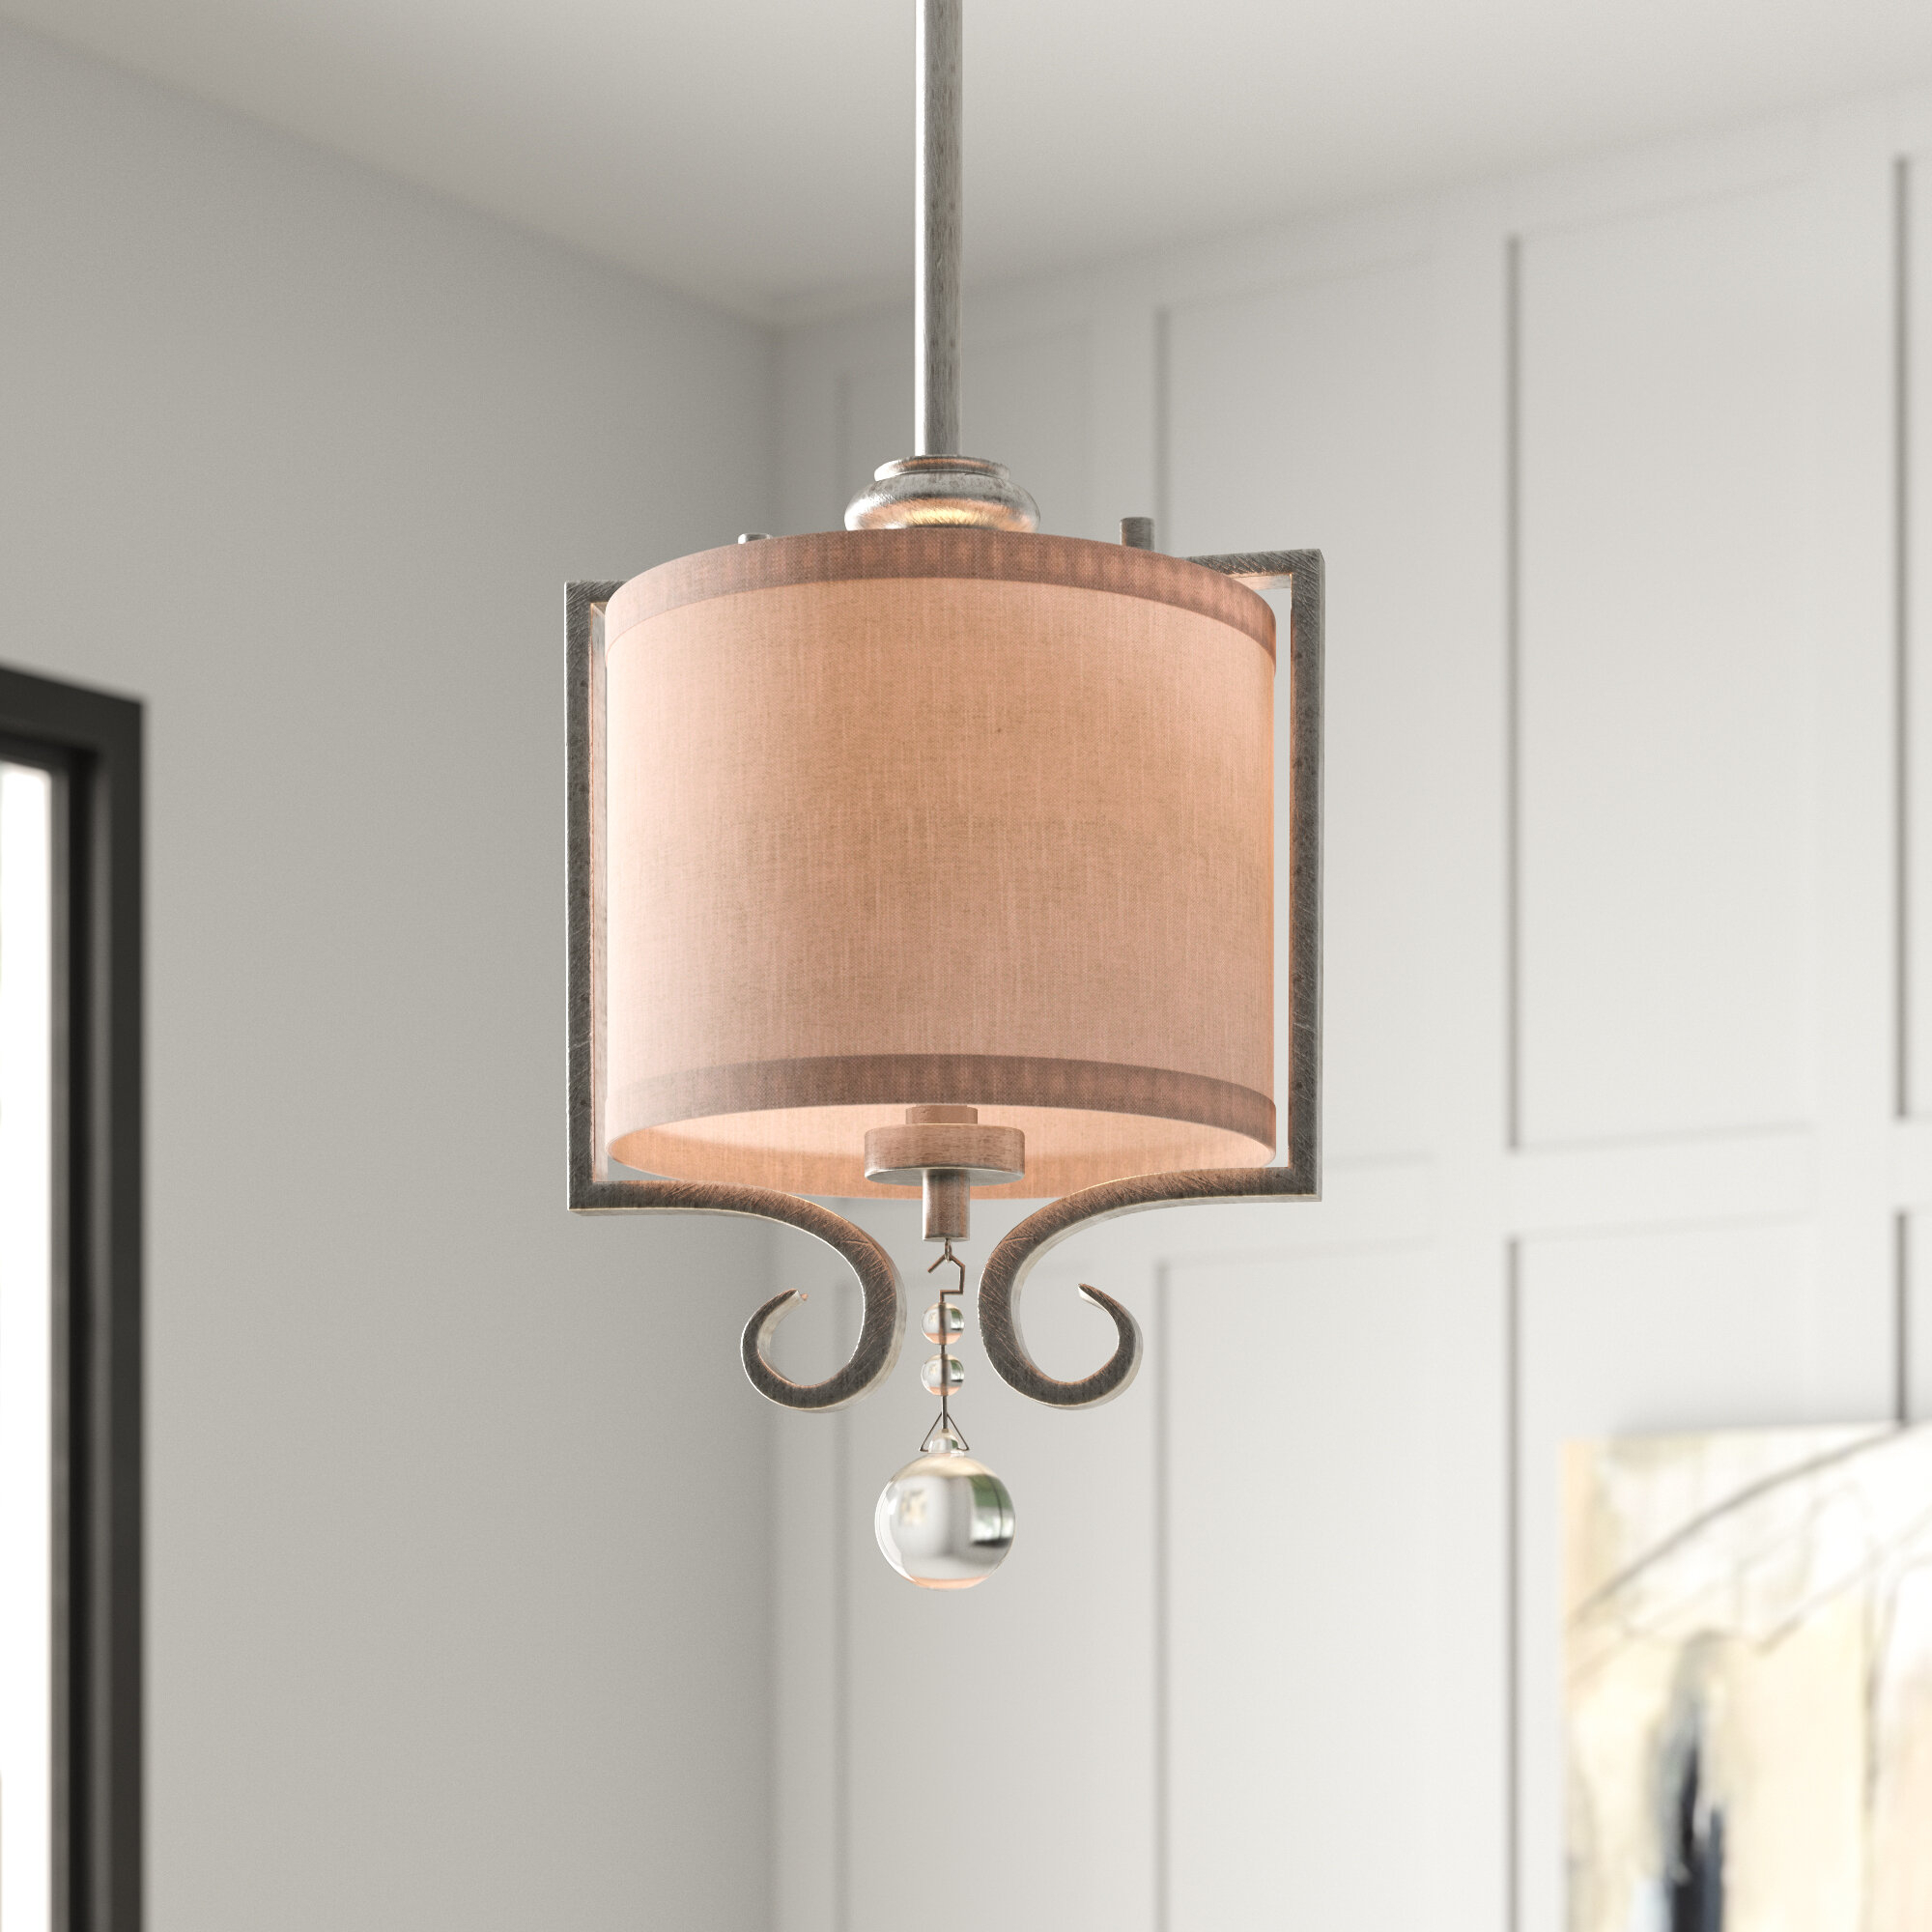 Beasley 1-Light Single Drum Pendant in Spokane 1-Light Single Urn Pendants (Image 6 of 30)